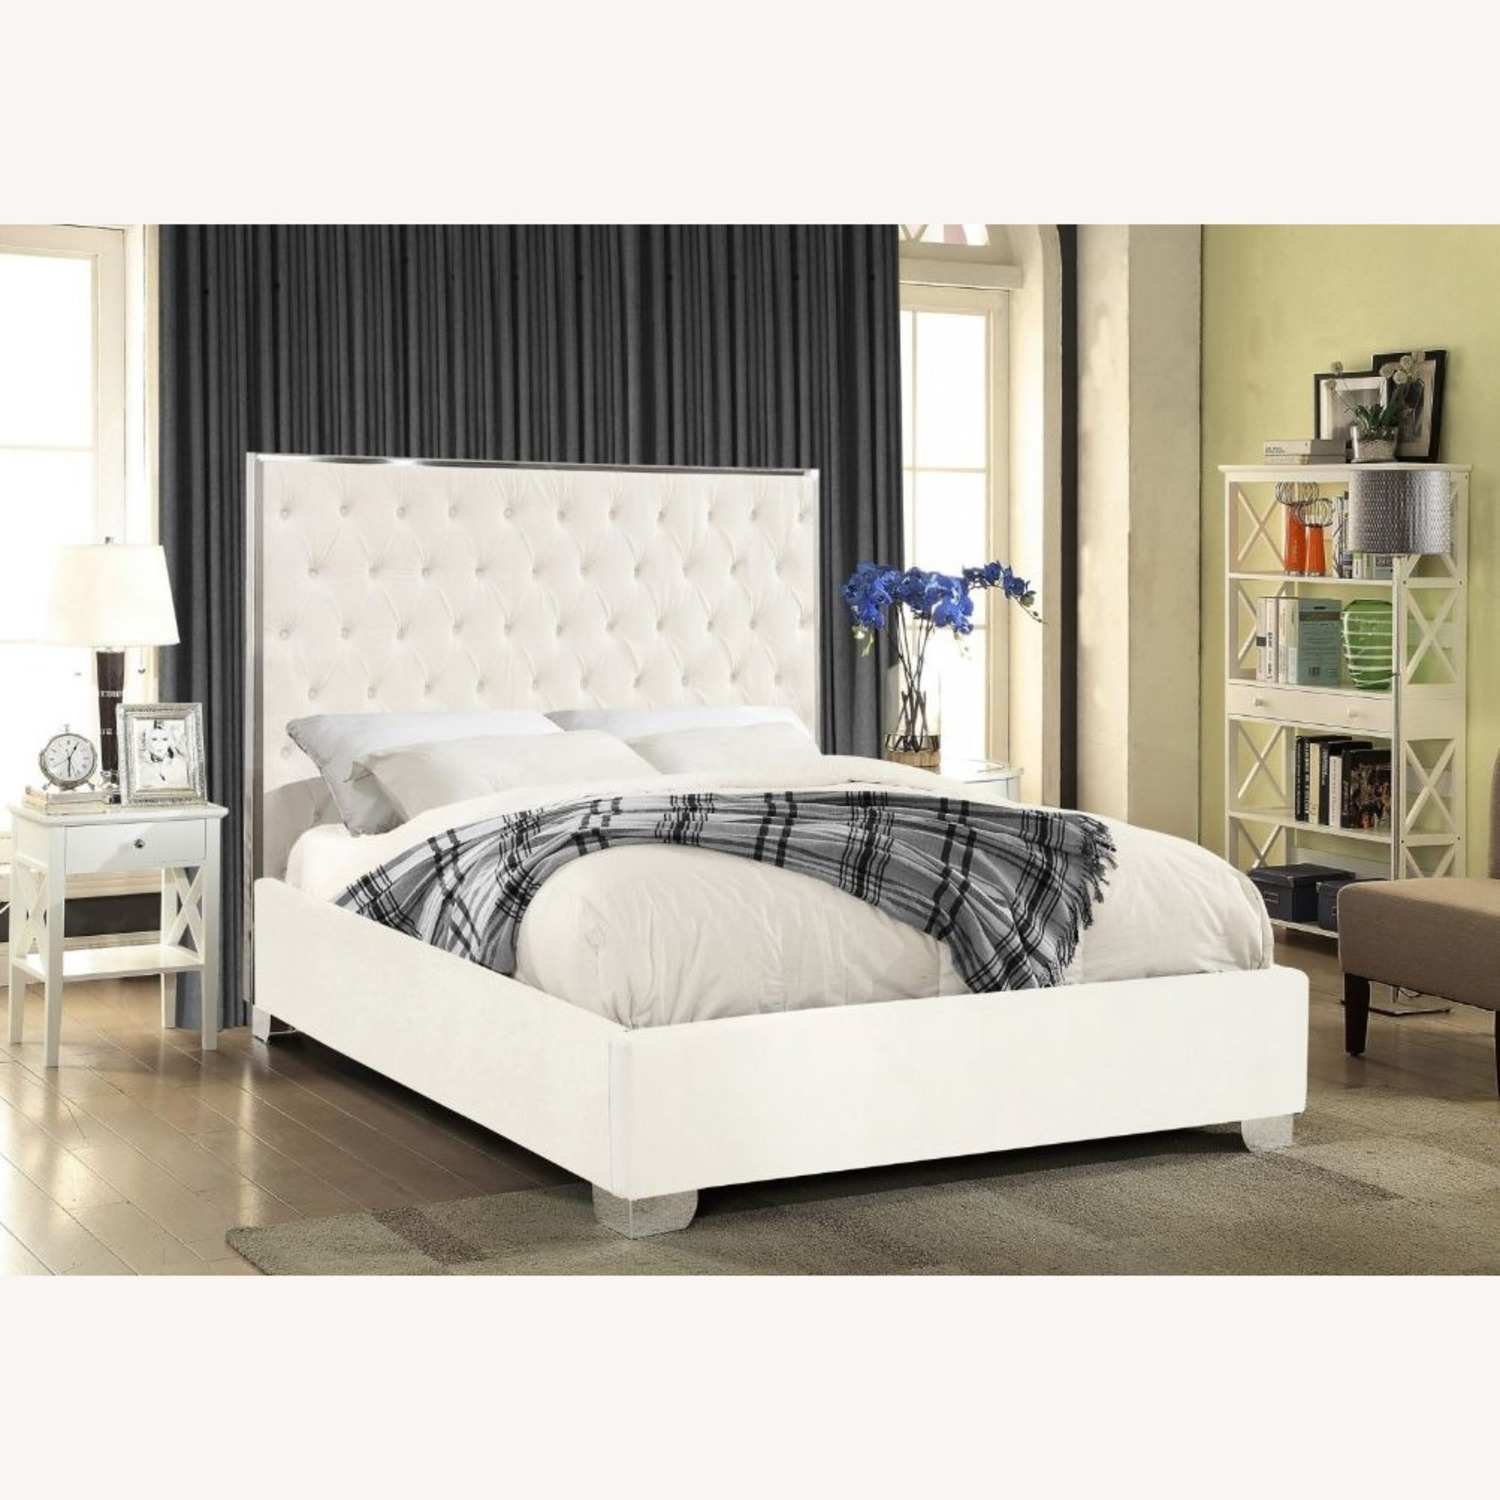 Wayfair Queen White Upholstered Platform Bed - image-1